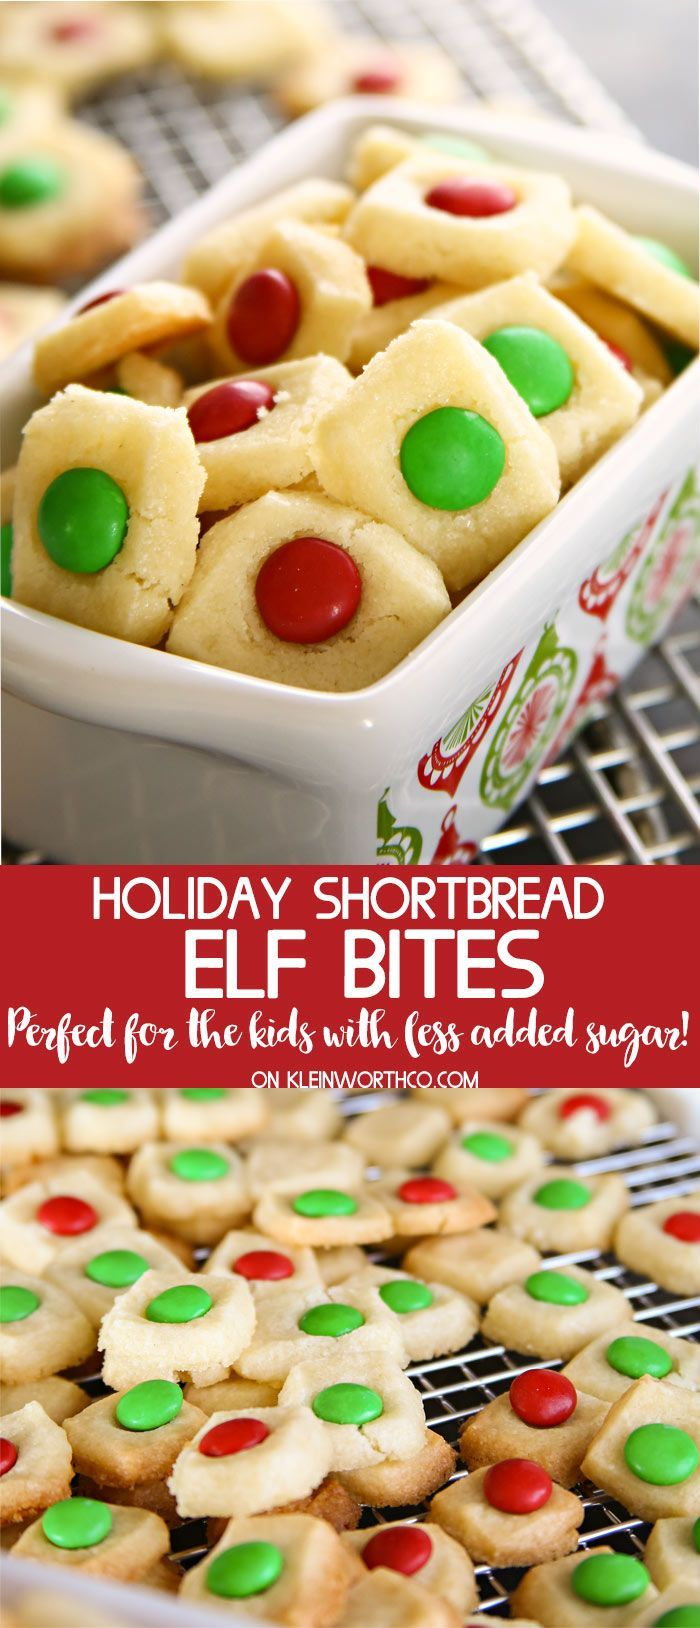 Holiday Shortbread Elf Bites, an easy to make holiday cookies recipe that kids love. Bite-sized buttery cookies topped with holiday chocolate candies.YUM!